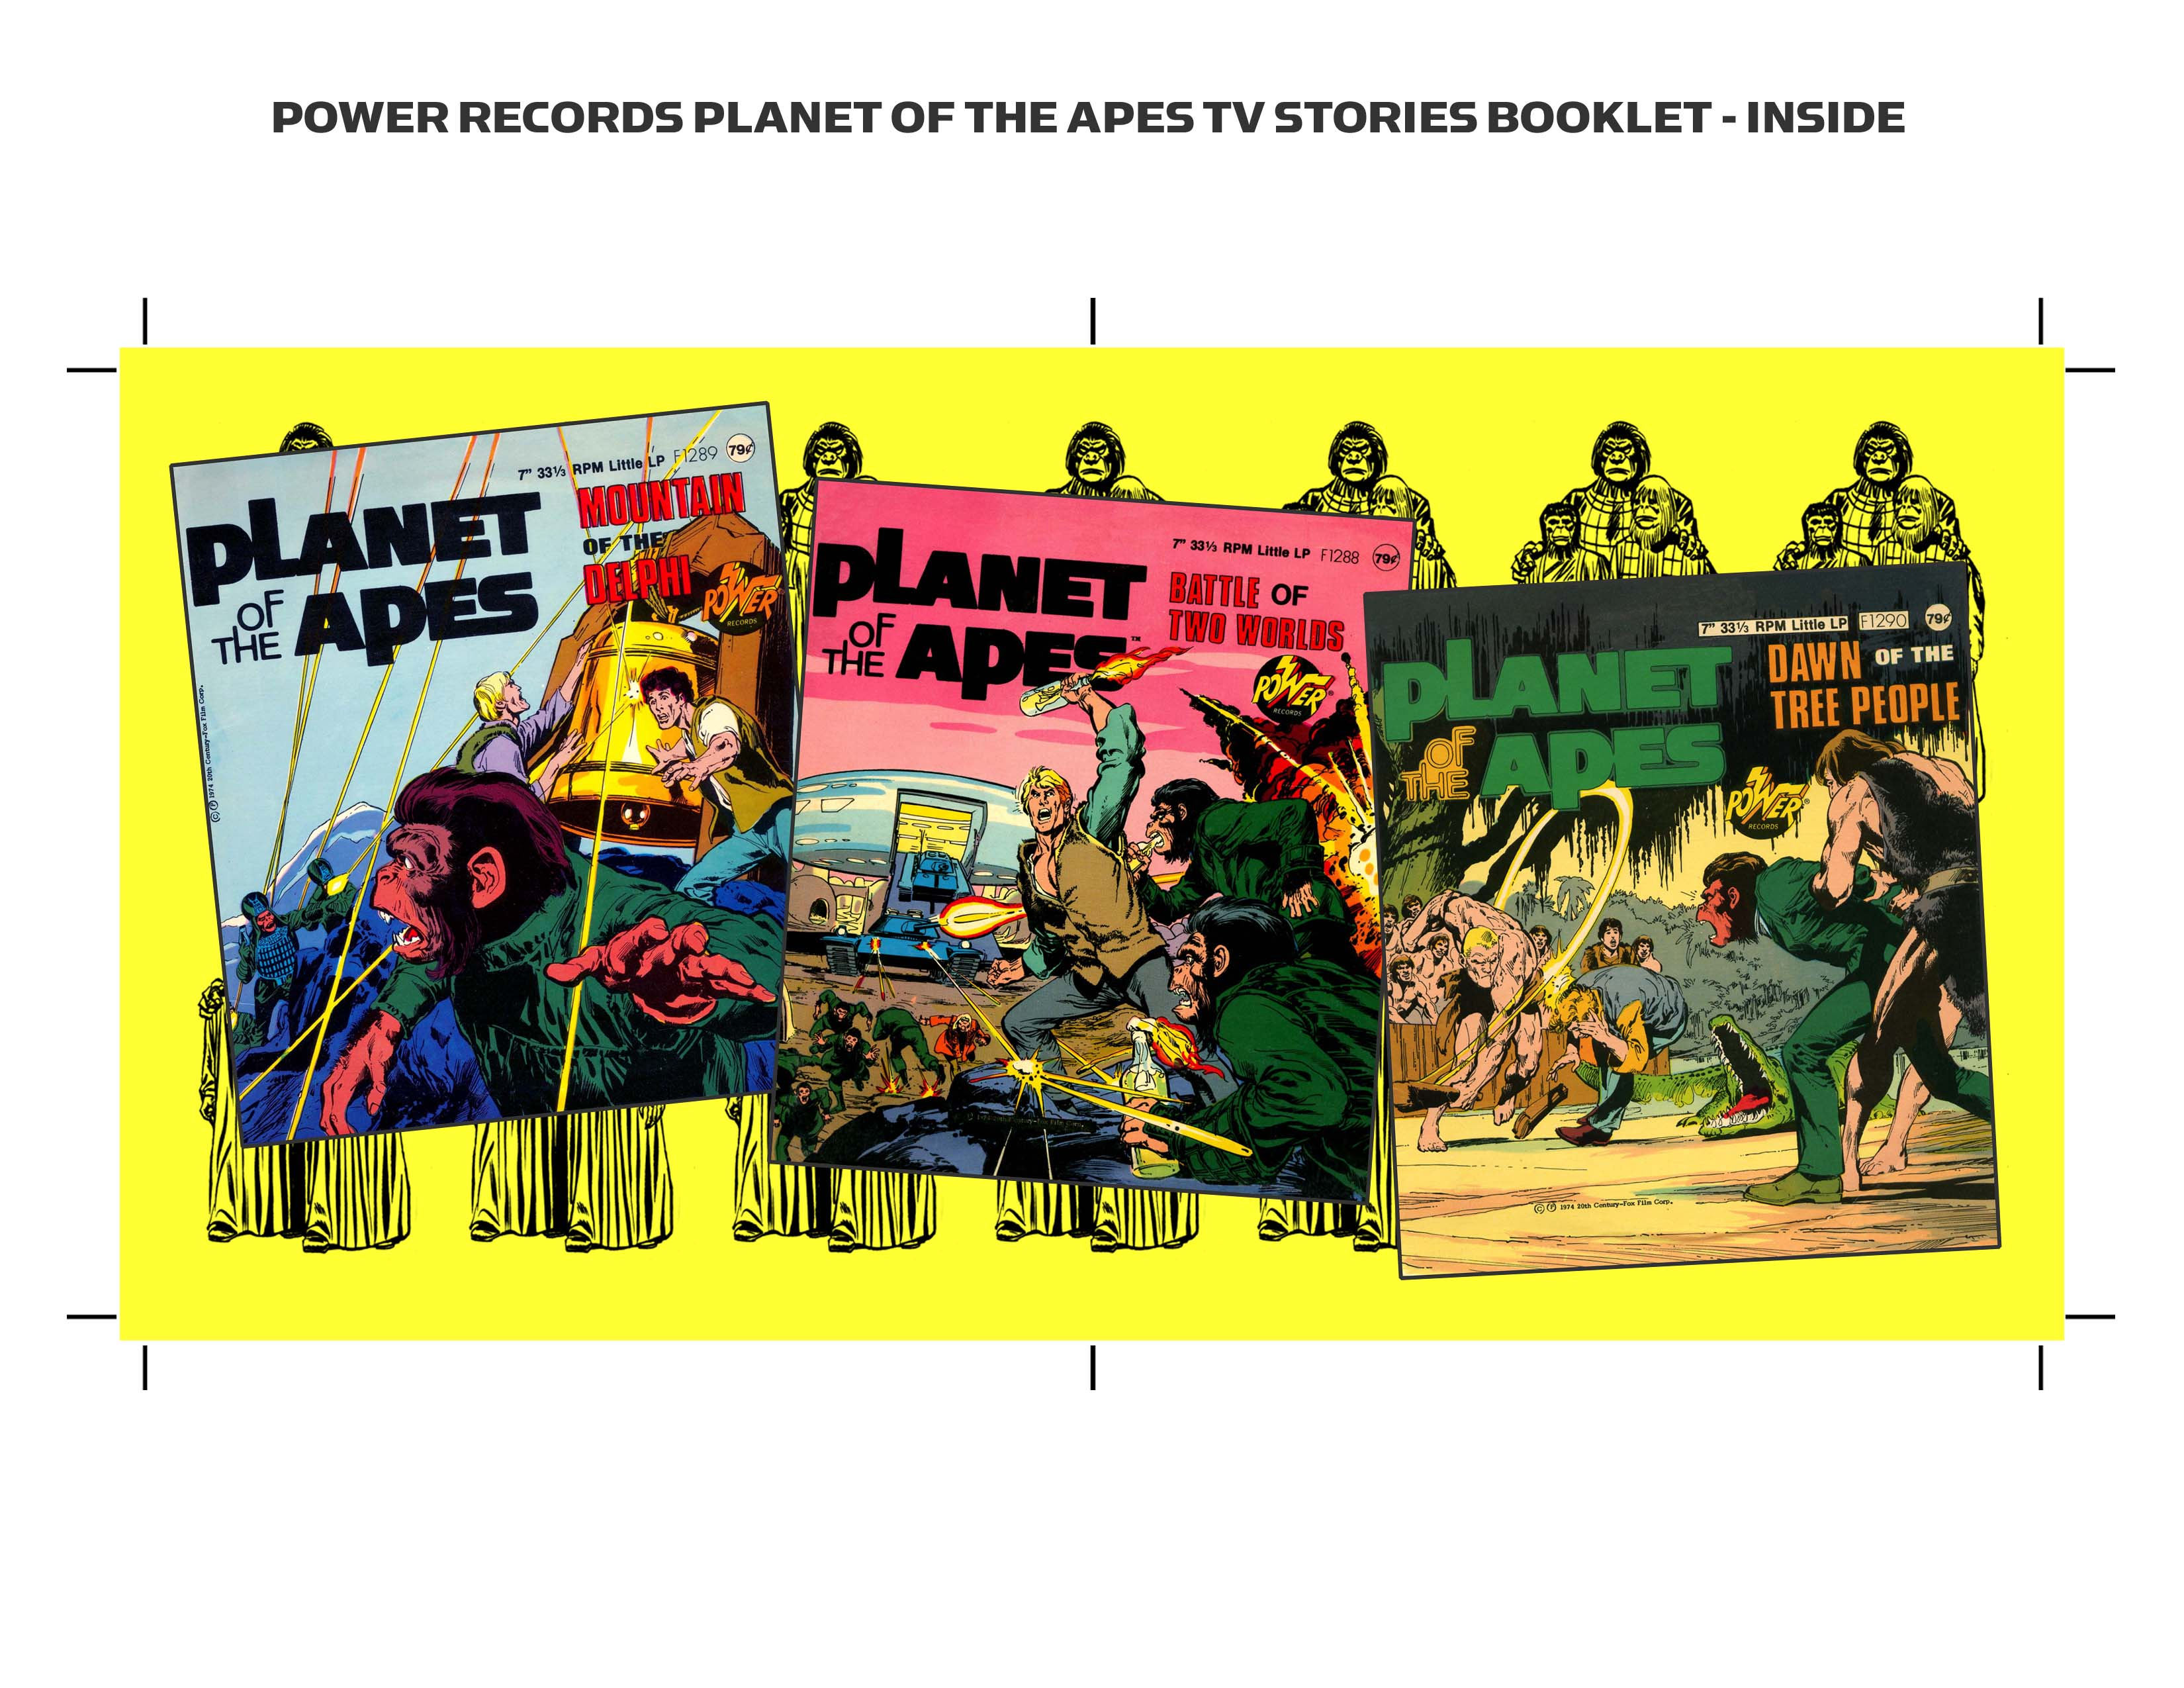 Apes Power Records